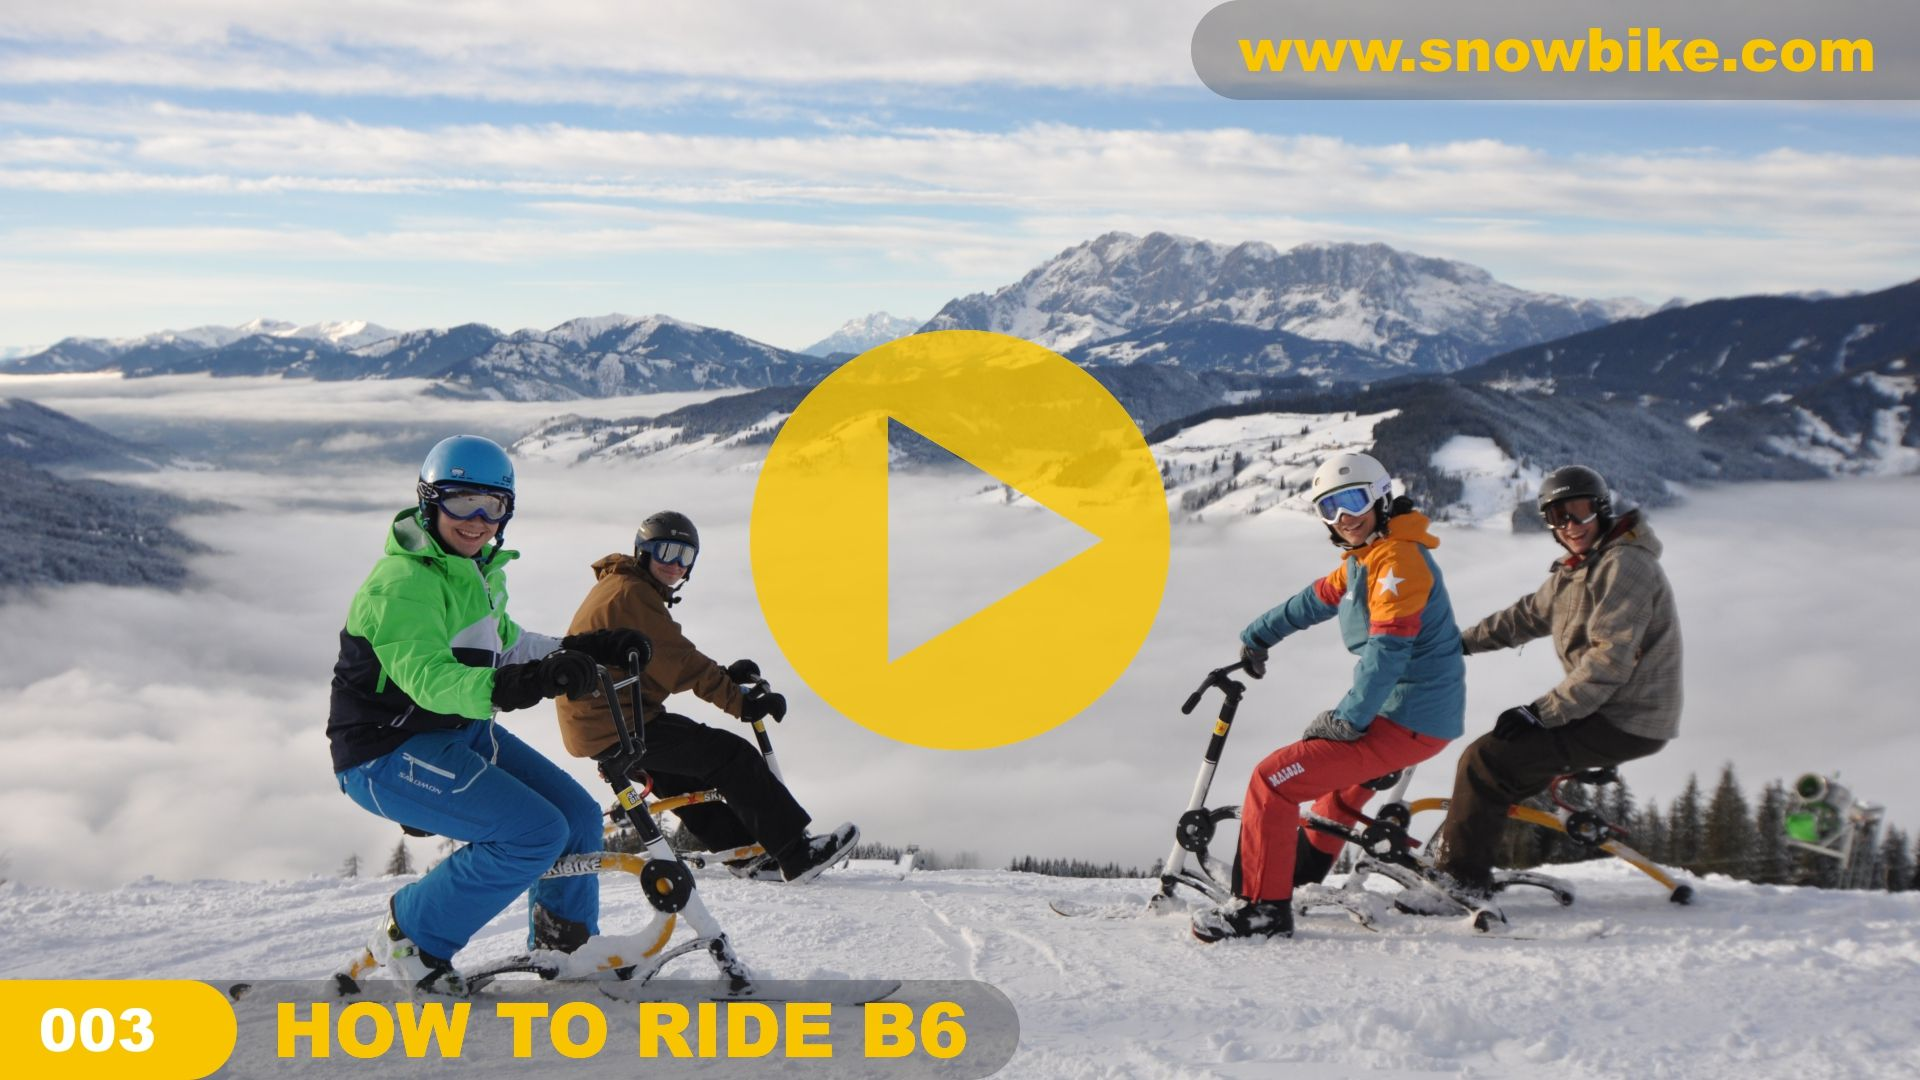 snowbike-basics-how-to-ride-b6-coverA006BD81-9790-677E-C78F-00C0A6C7EC59.jpg